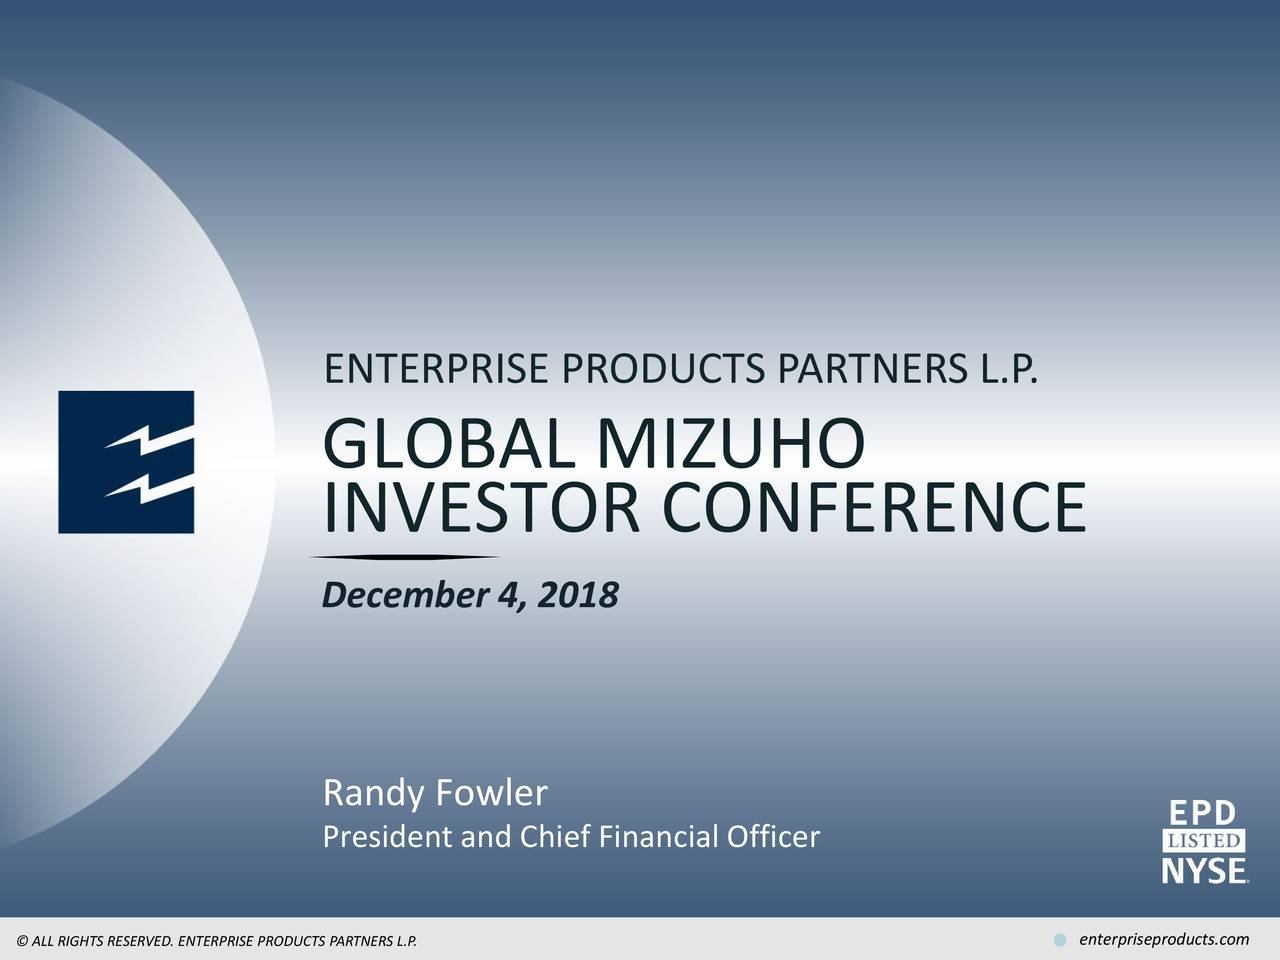 GLOBAL MIZUHO INVESTOR CONFERENCE December 4, 2018 Randy Fowler President and Chief Financial Officer